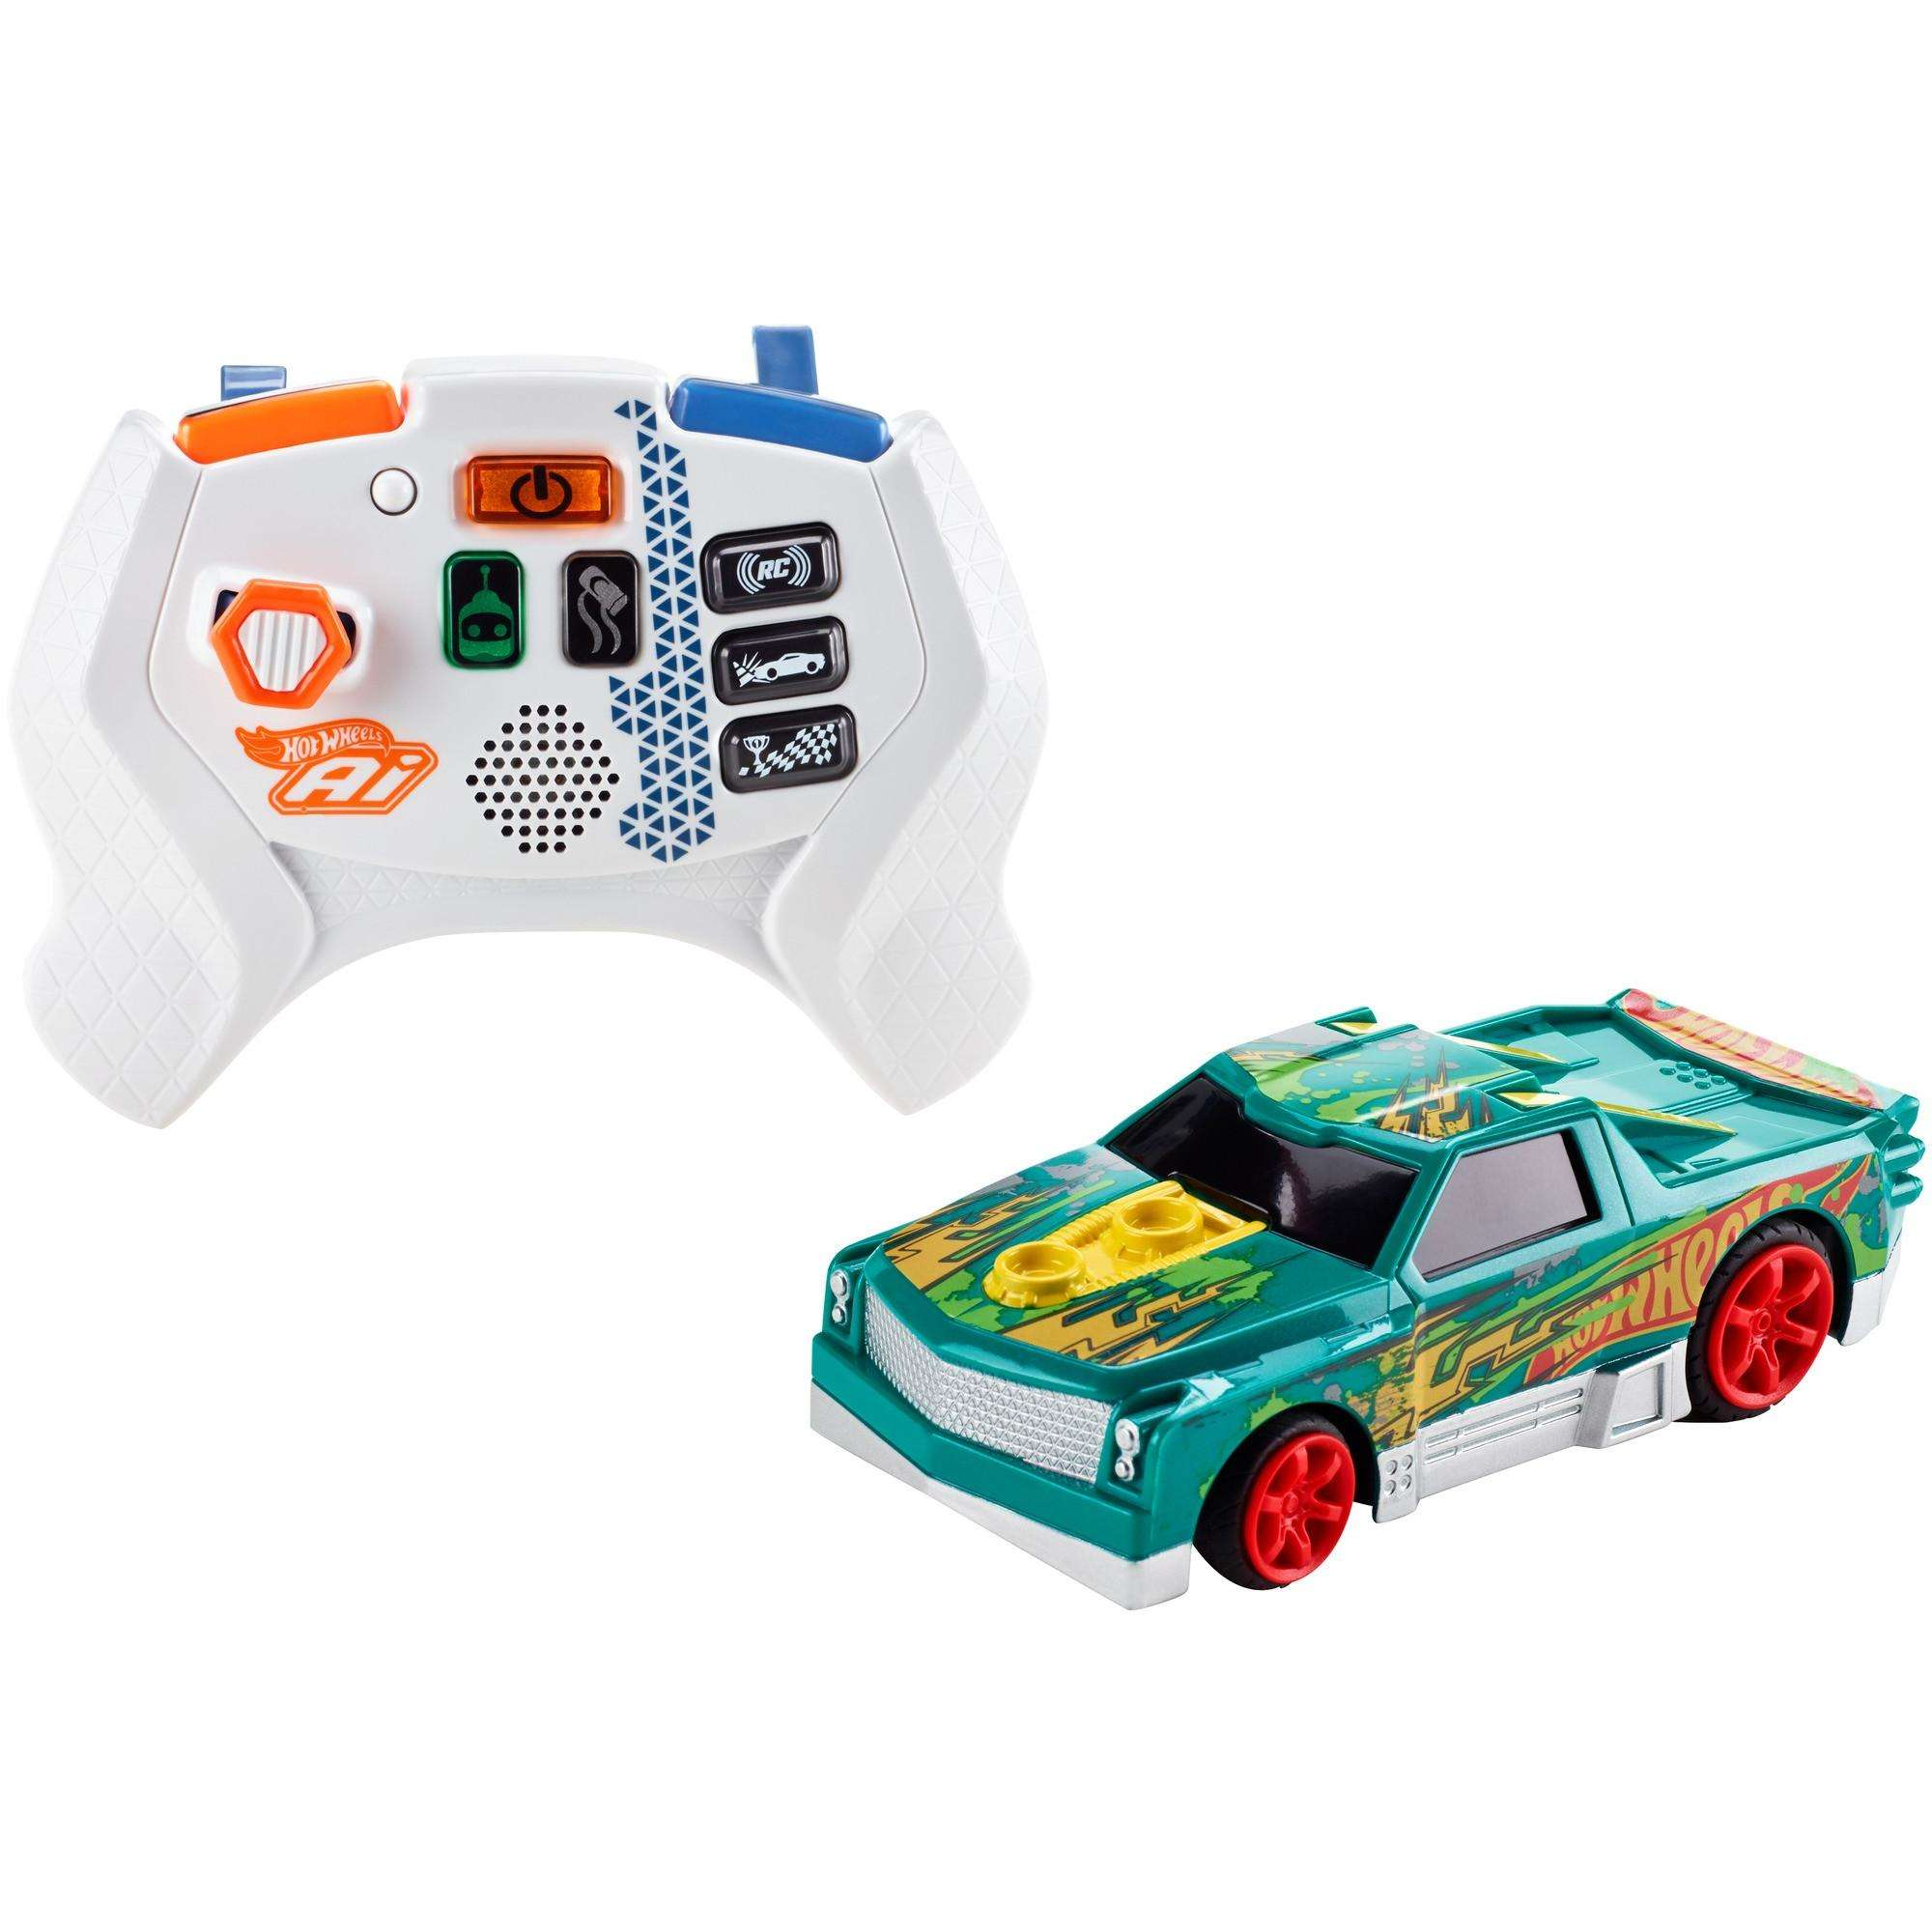 Hot Wheels Ai Turbo Diesel Vehicle + Controller by Mattel